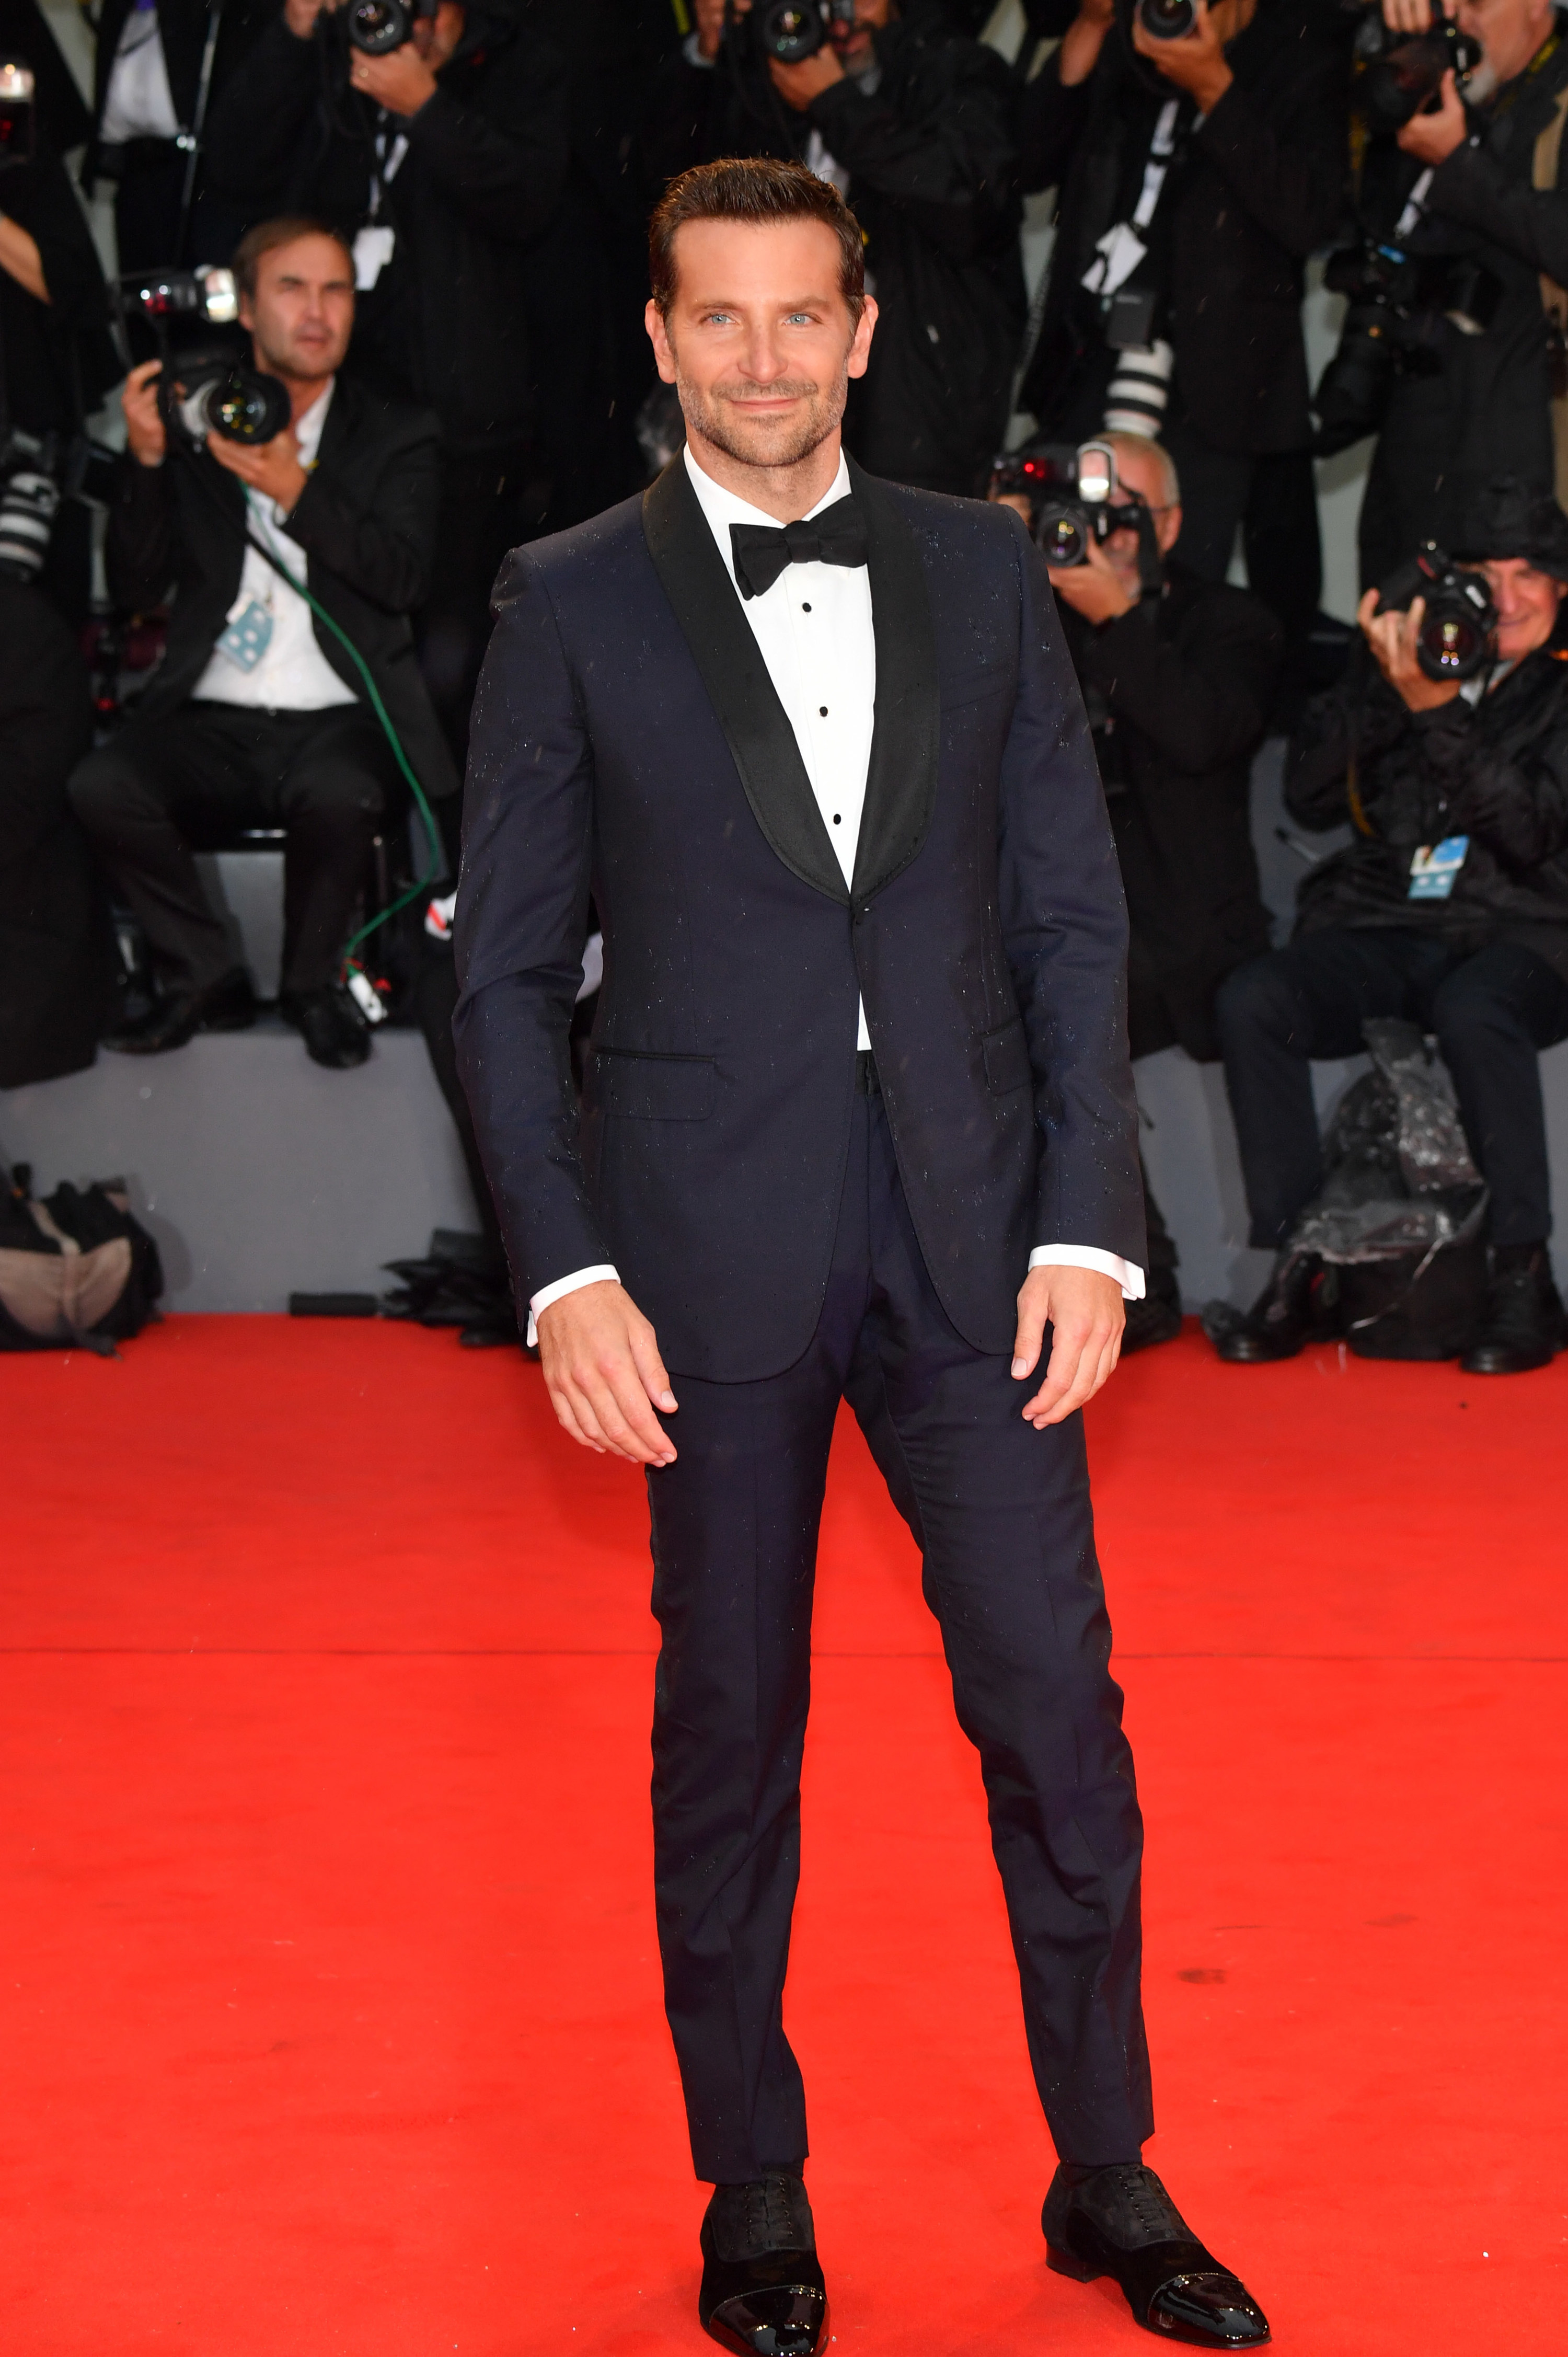 Bradley Cooper walks the red carpet ahead of the 'A Star Is Born' screening during the 75th Venice Film Festival.